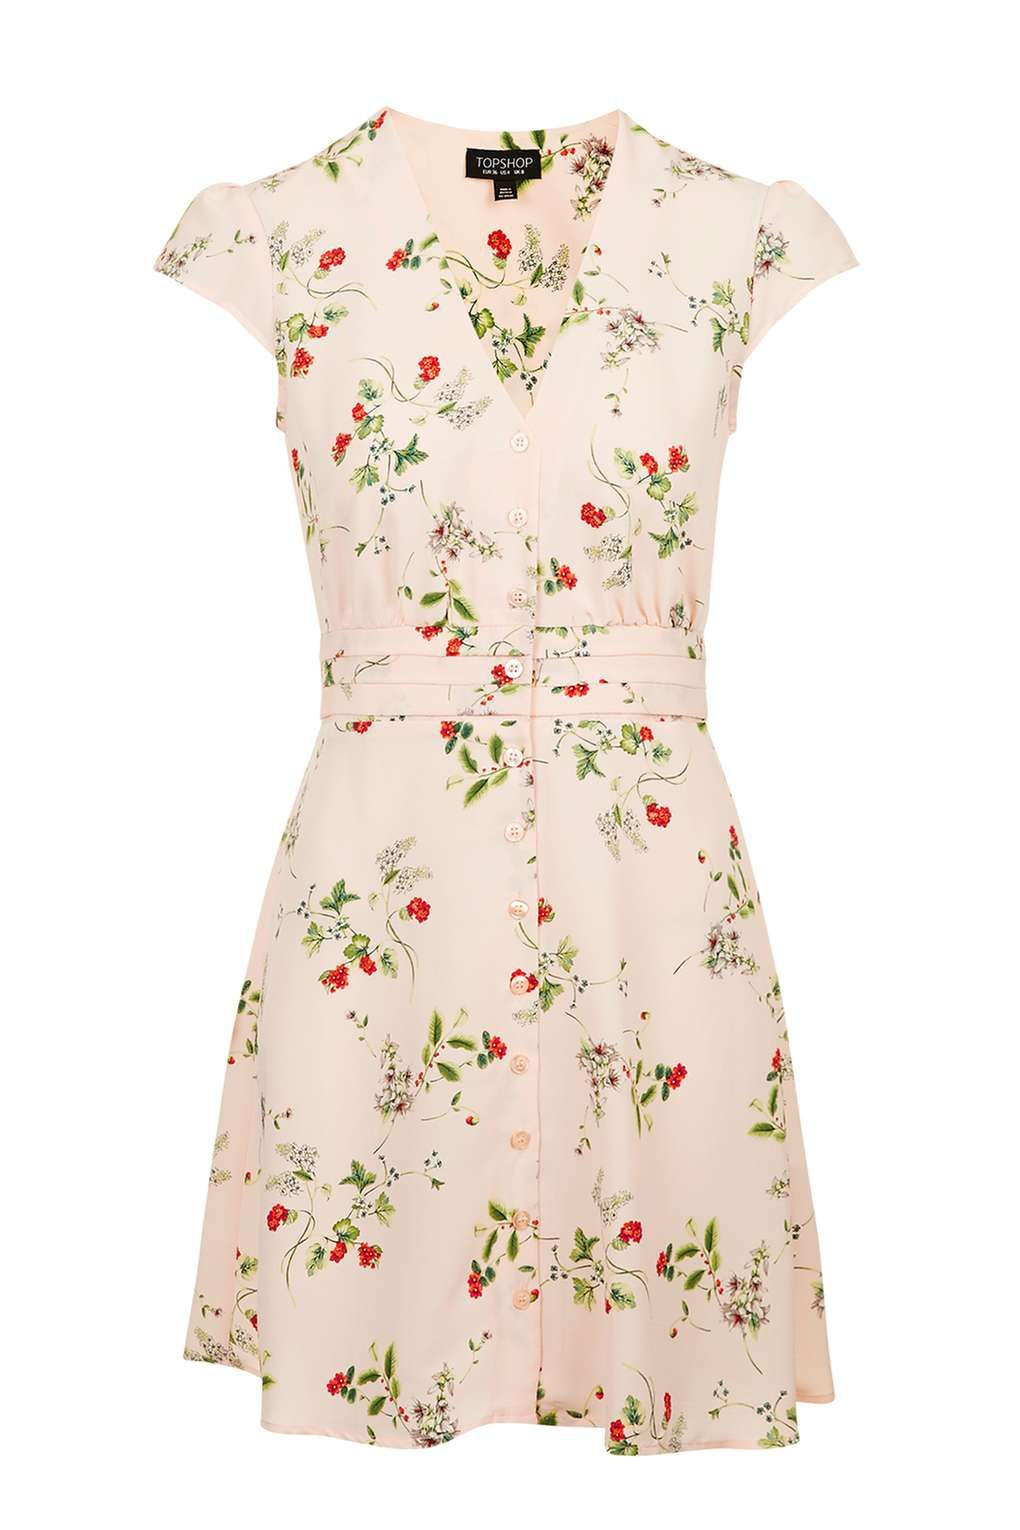 Floral Tea Dress Dresses Clothing Wish List Pinterest